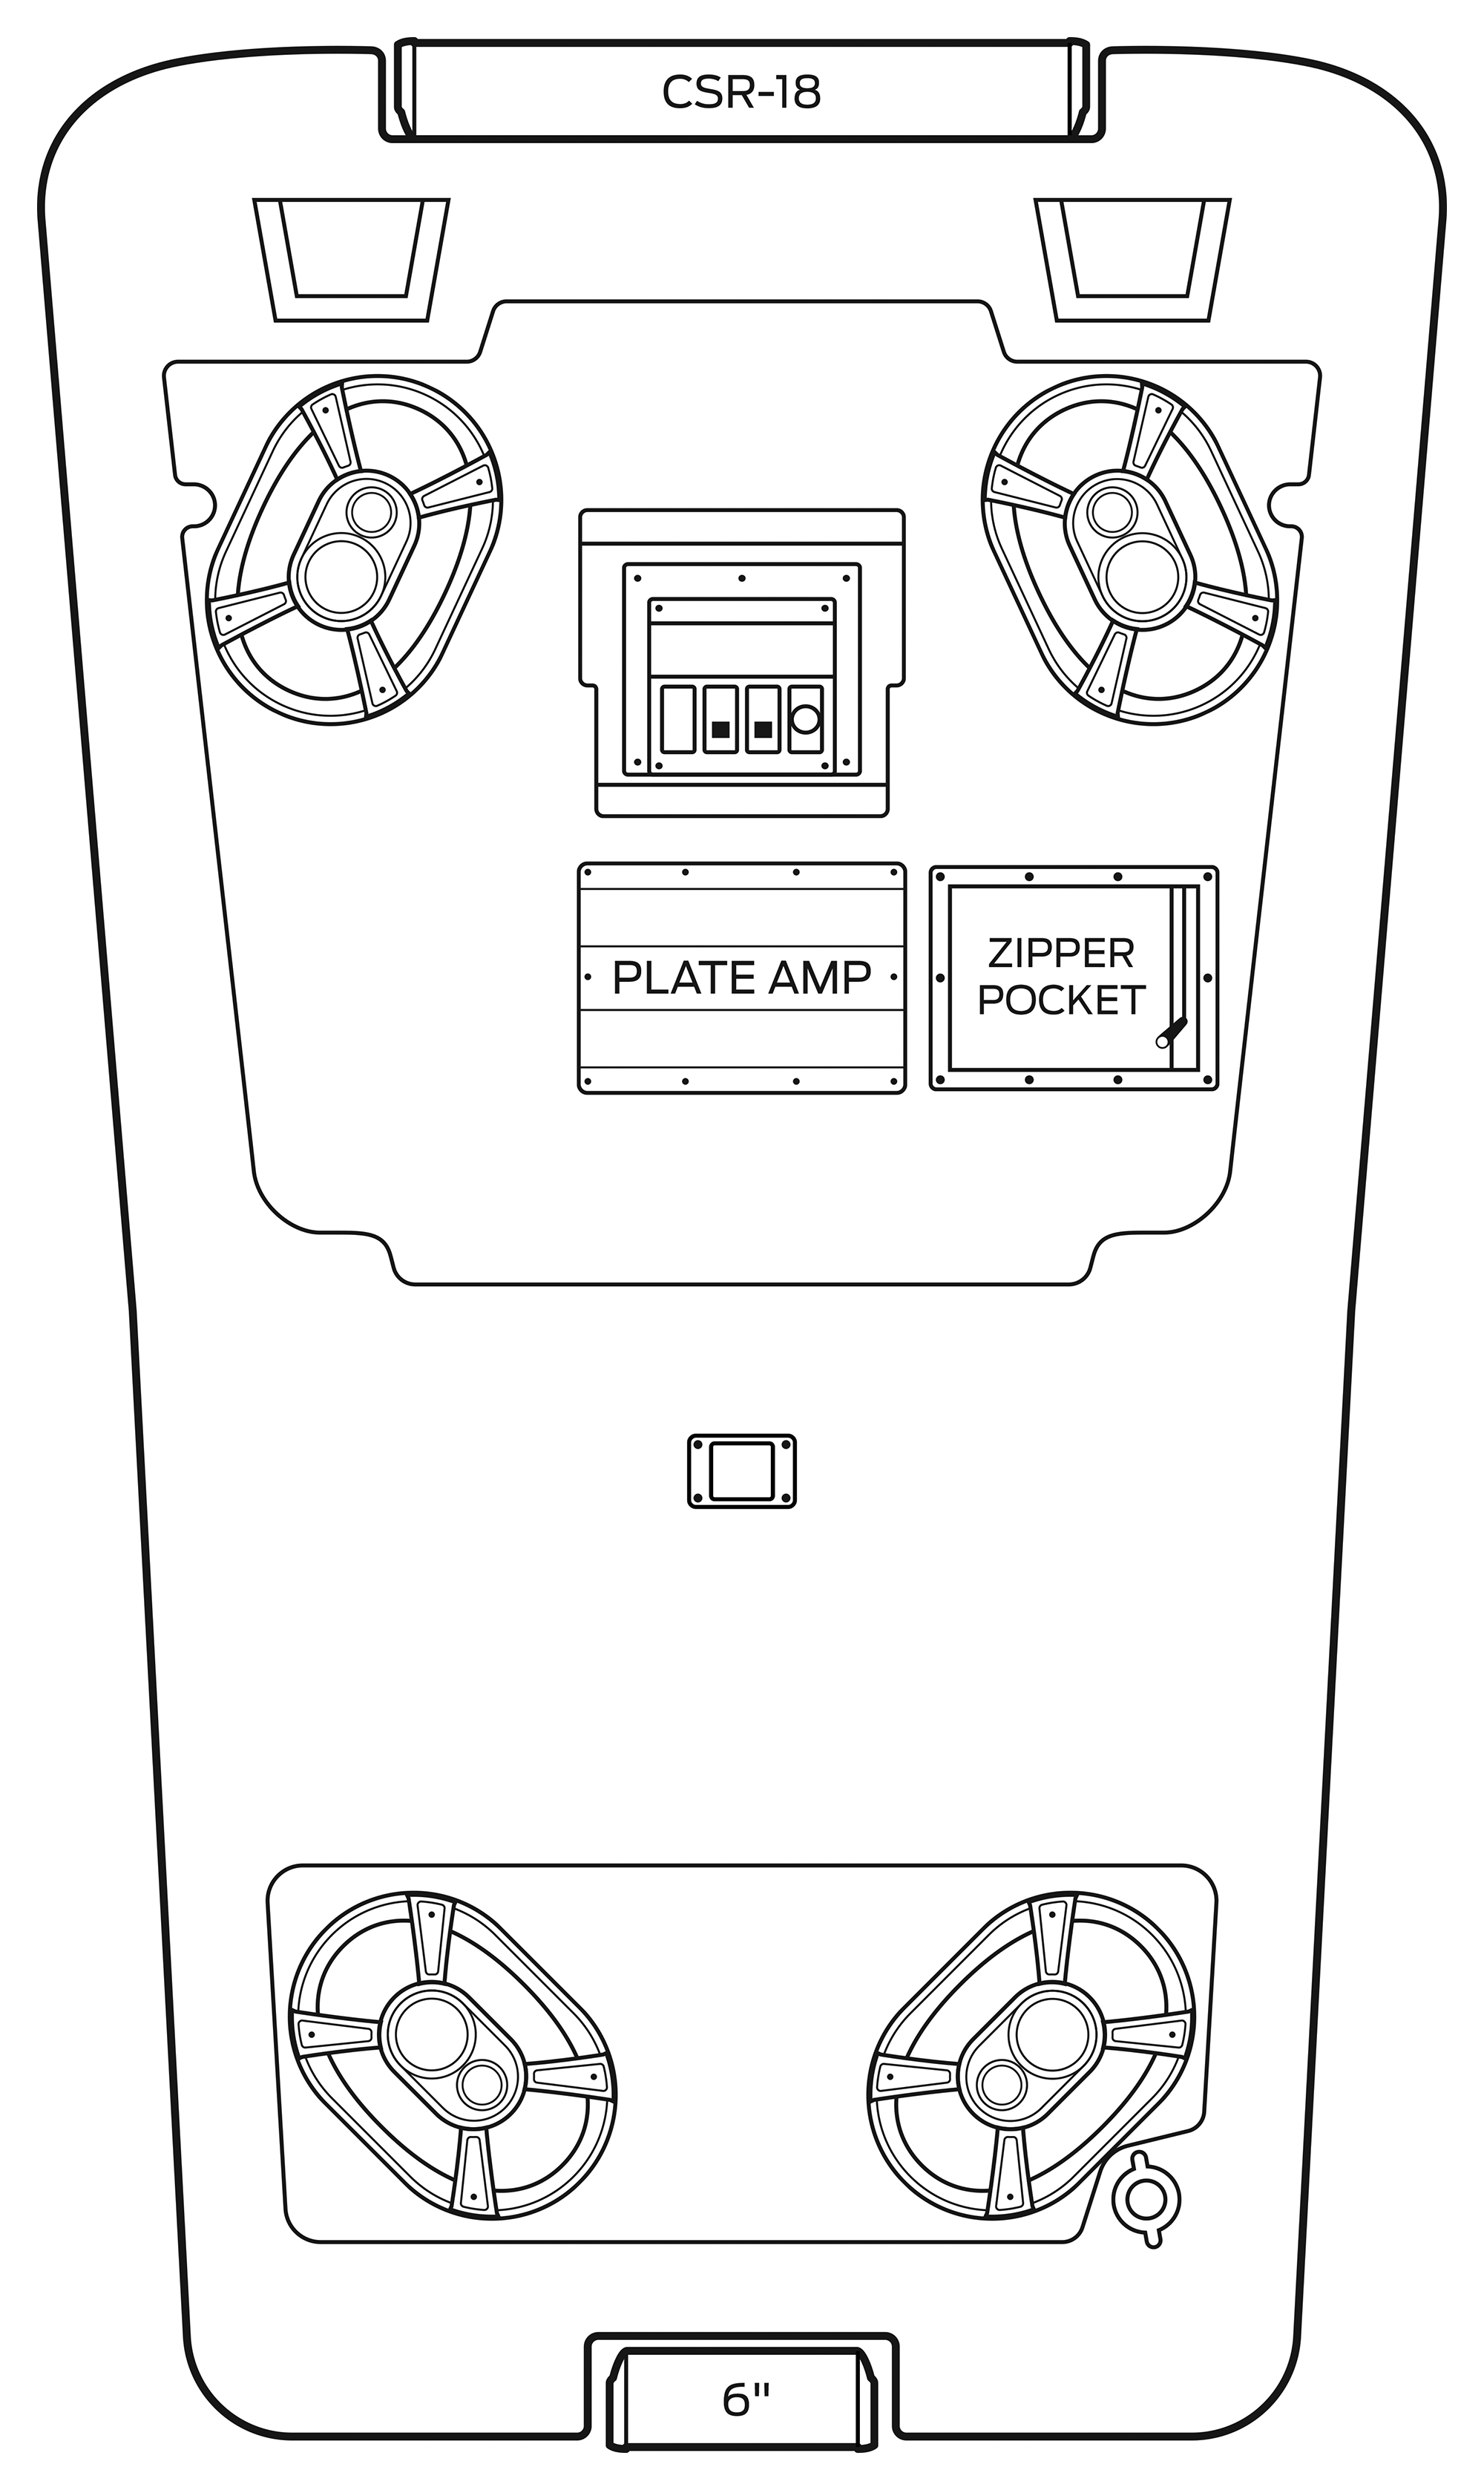 Rzr Xp 4 1000 Polaris Battery Wiring Diagram On 5 Channel Amp Kit Features